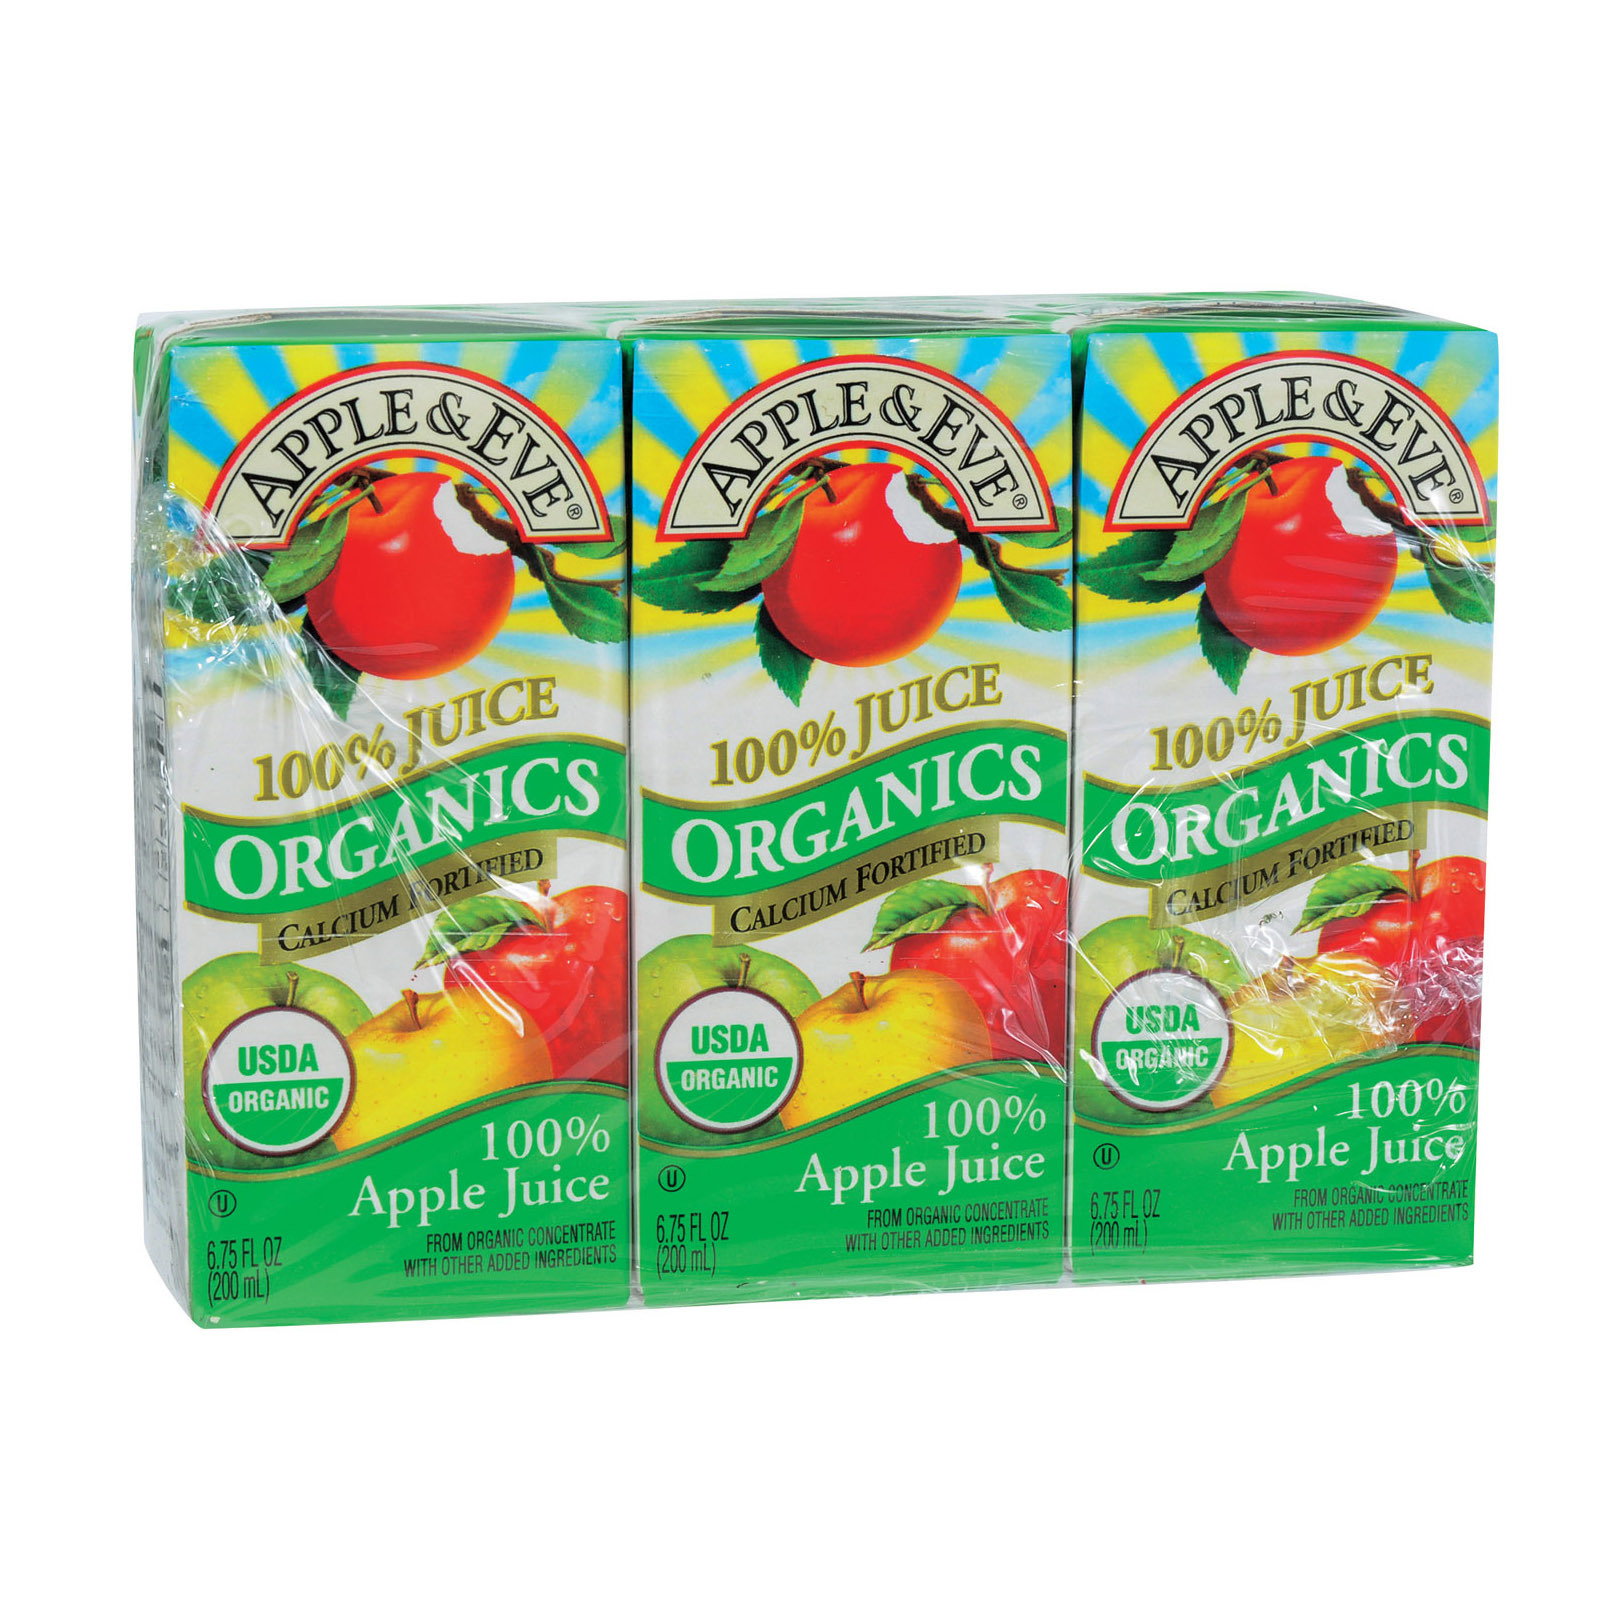 Apple and Eve Organics 100 Percent Juice - Apple Juice - Case of 9 - 200 ml